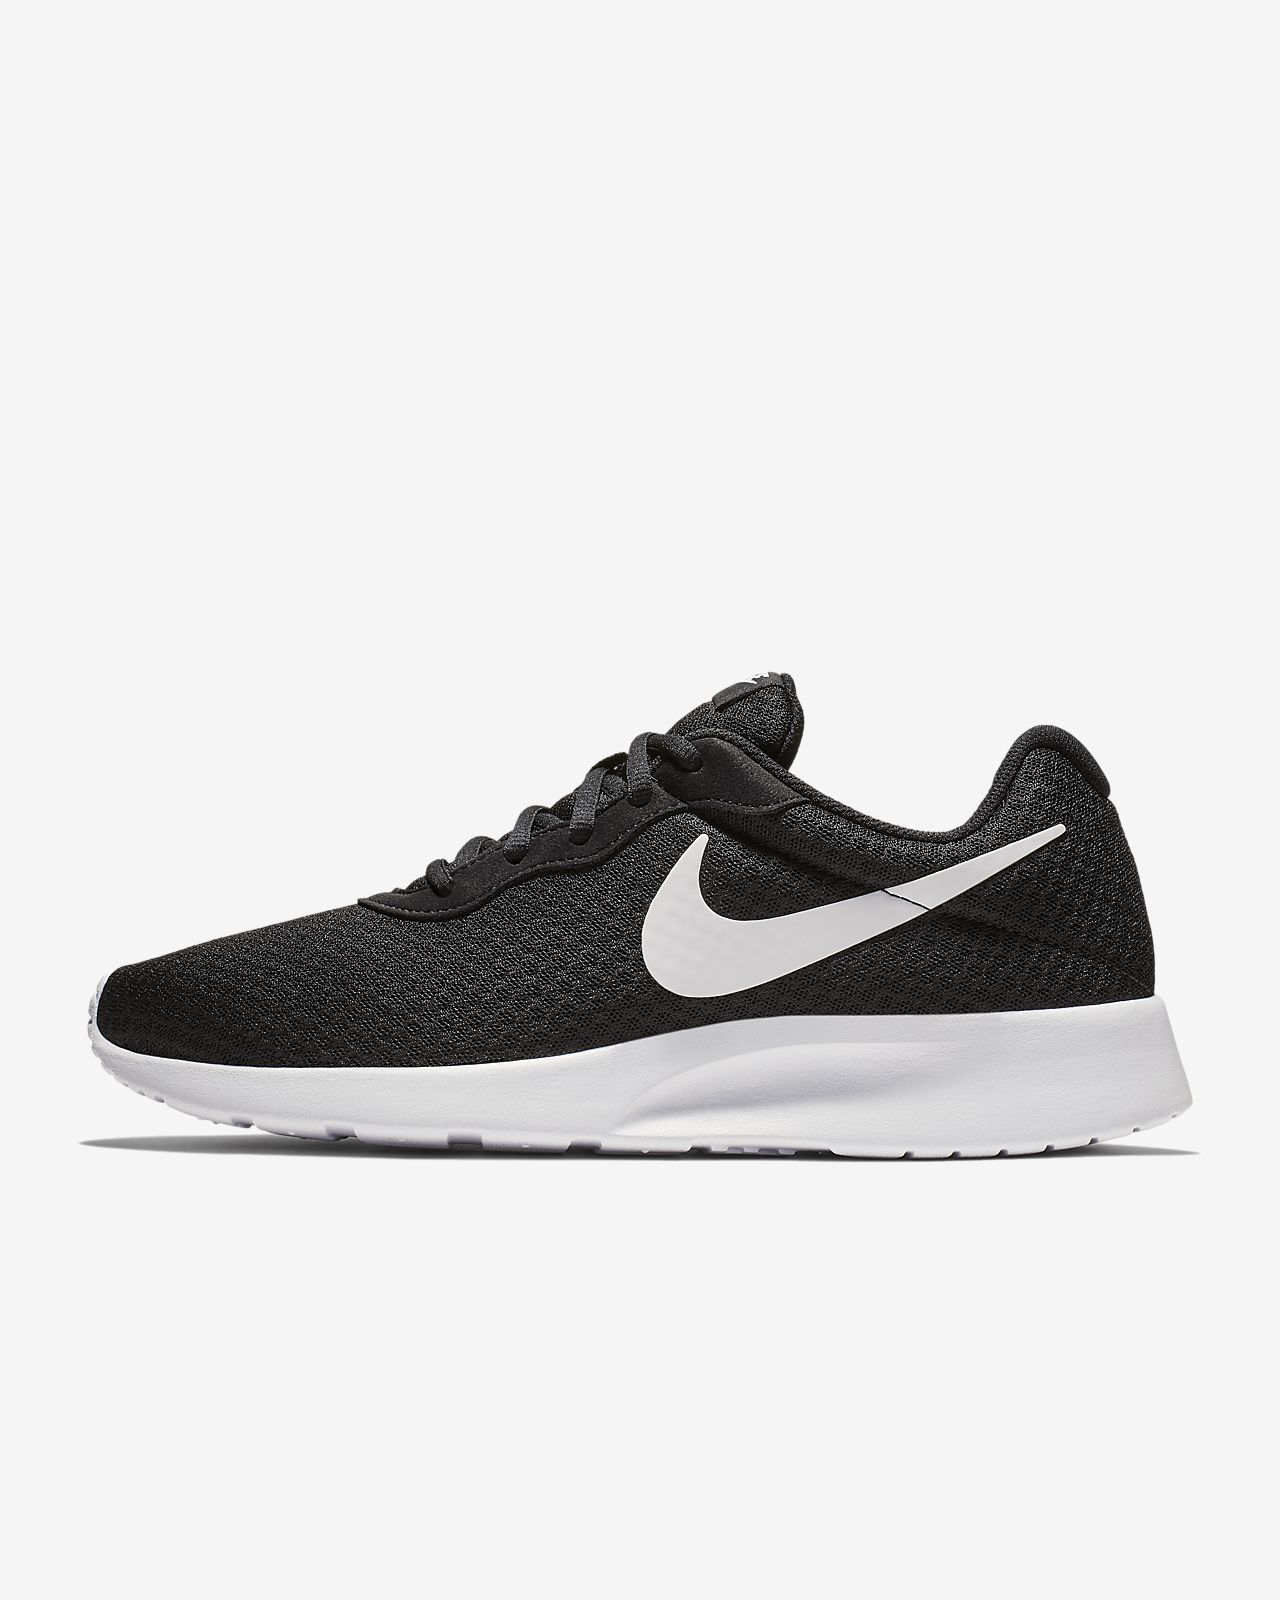 1542c72a3746 Low Resolution Nike Tanjun Women s Shoe Nike Tanjun Women s Shoe